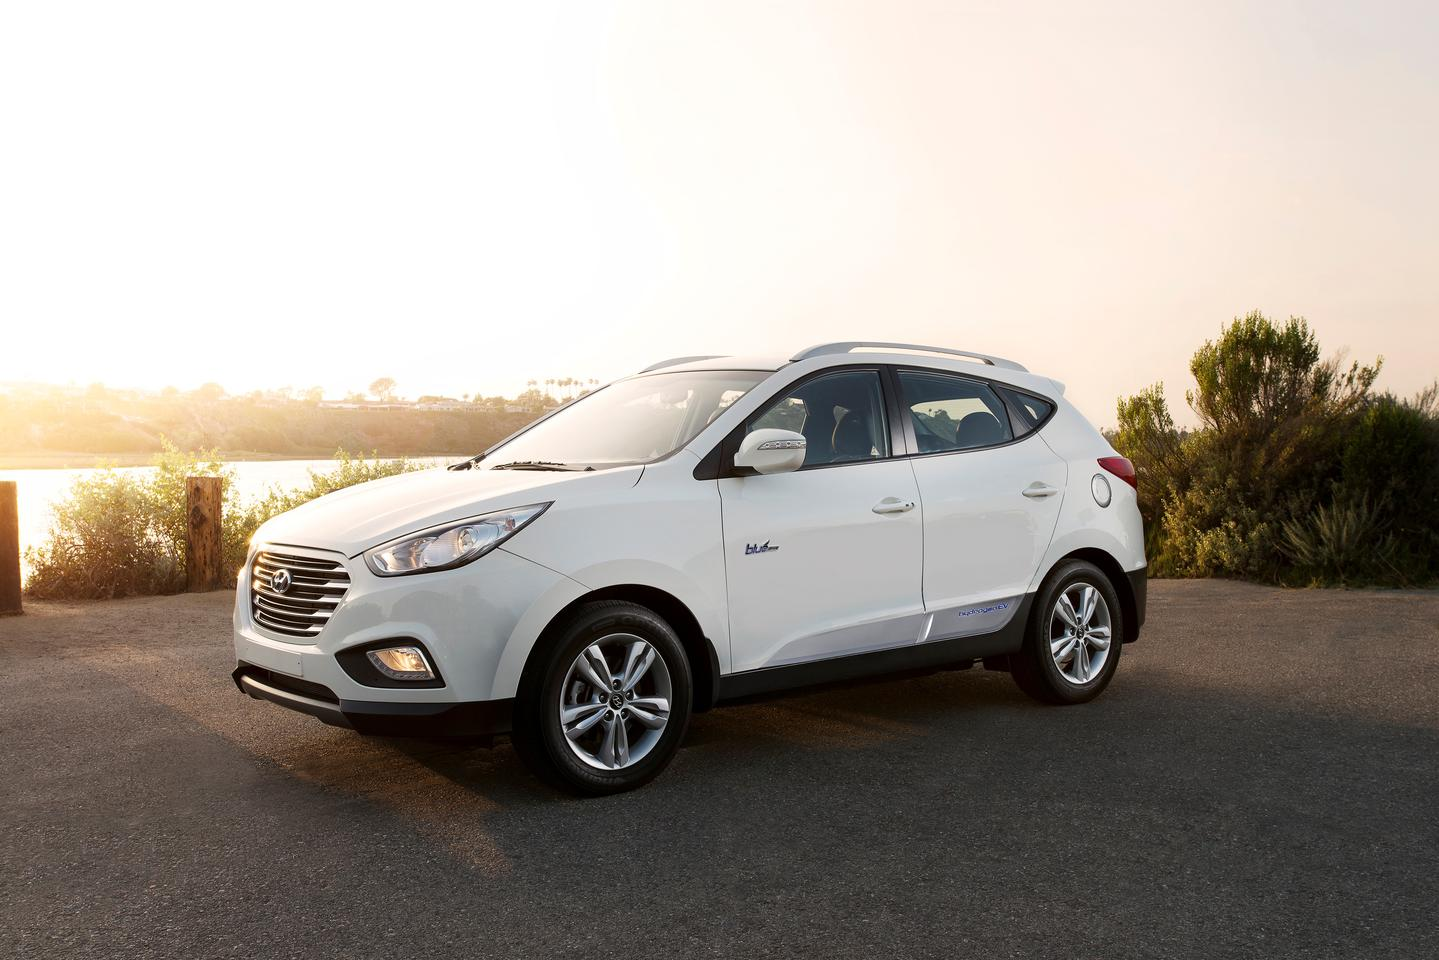 The Tucson Fuel Cell has performance comparable to an electric car